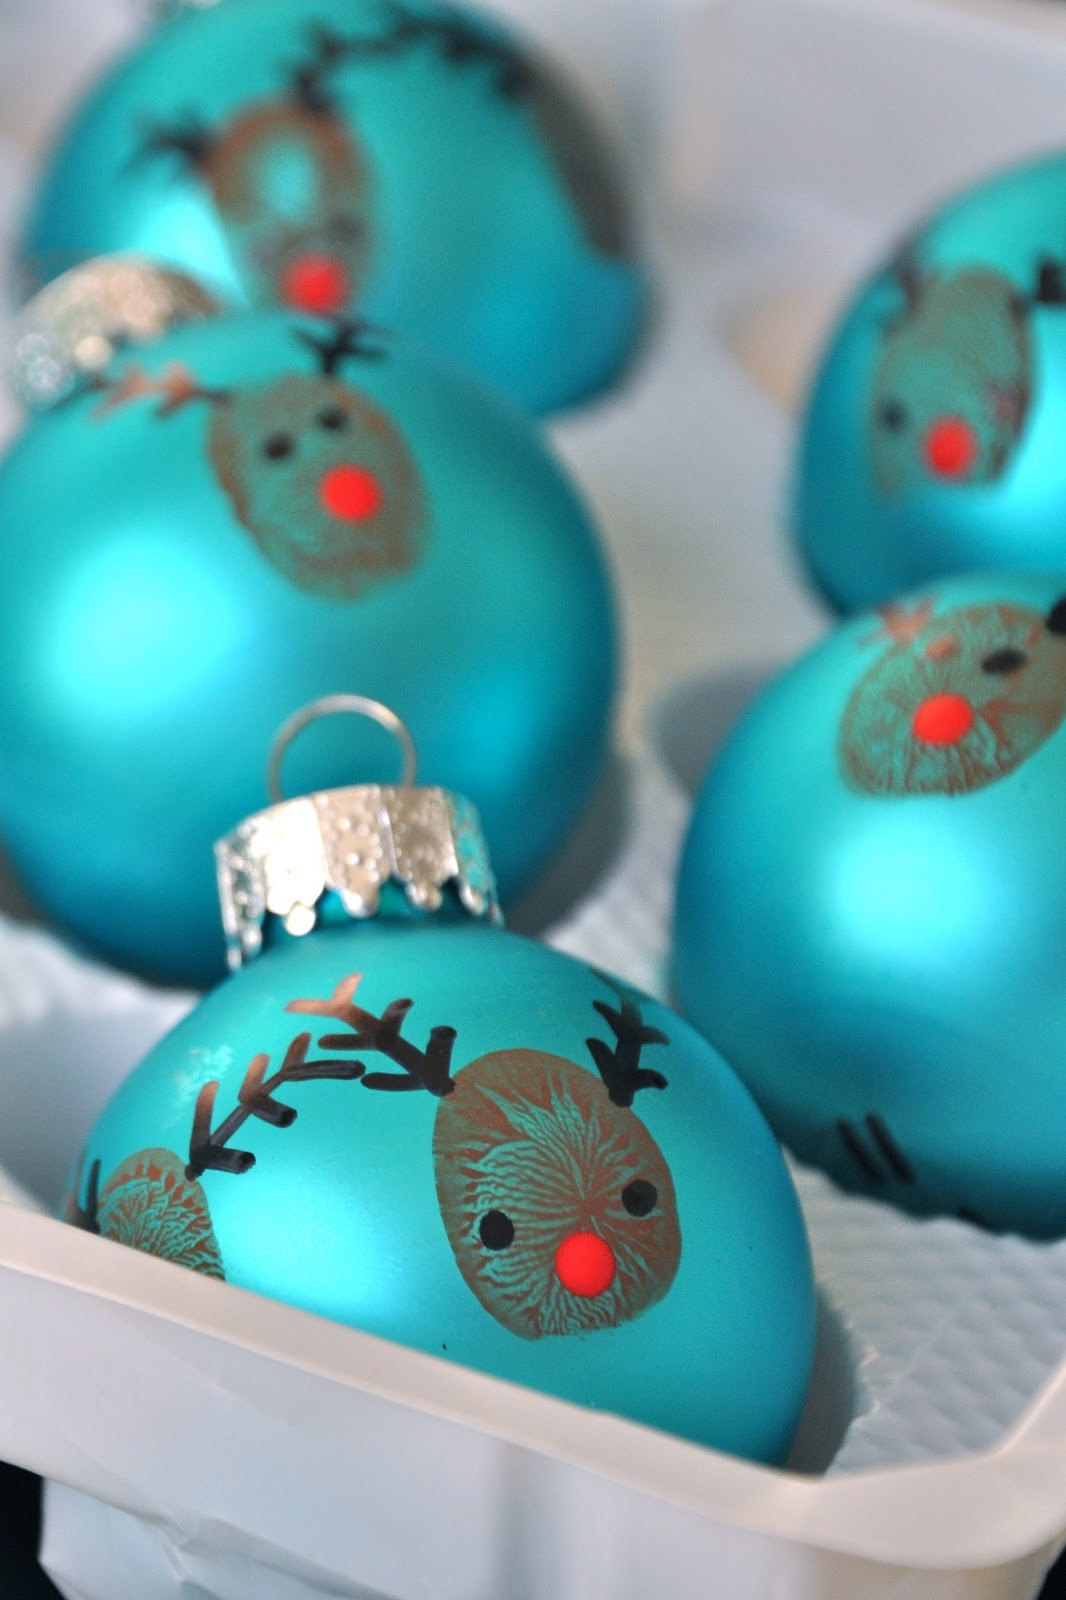 Best Of 15 Homemade Christmas Tree Decorations Christmas Glass Christmas Tree Decorations Of Great 42 Ideas Glass Christmas Tree Decorations